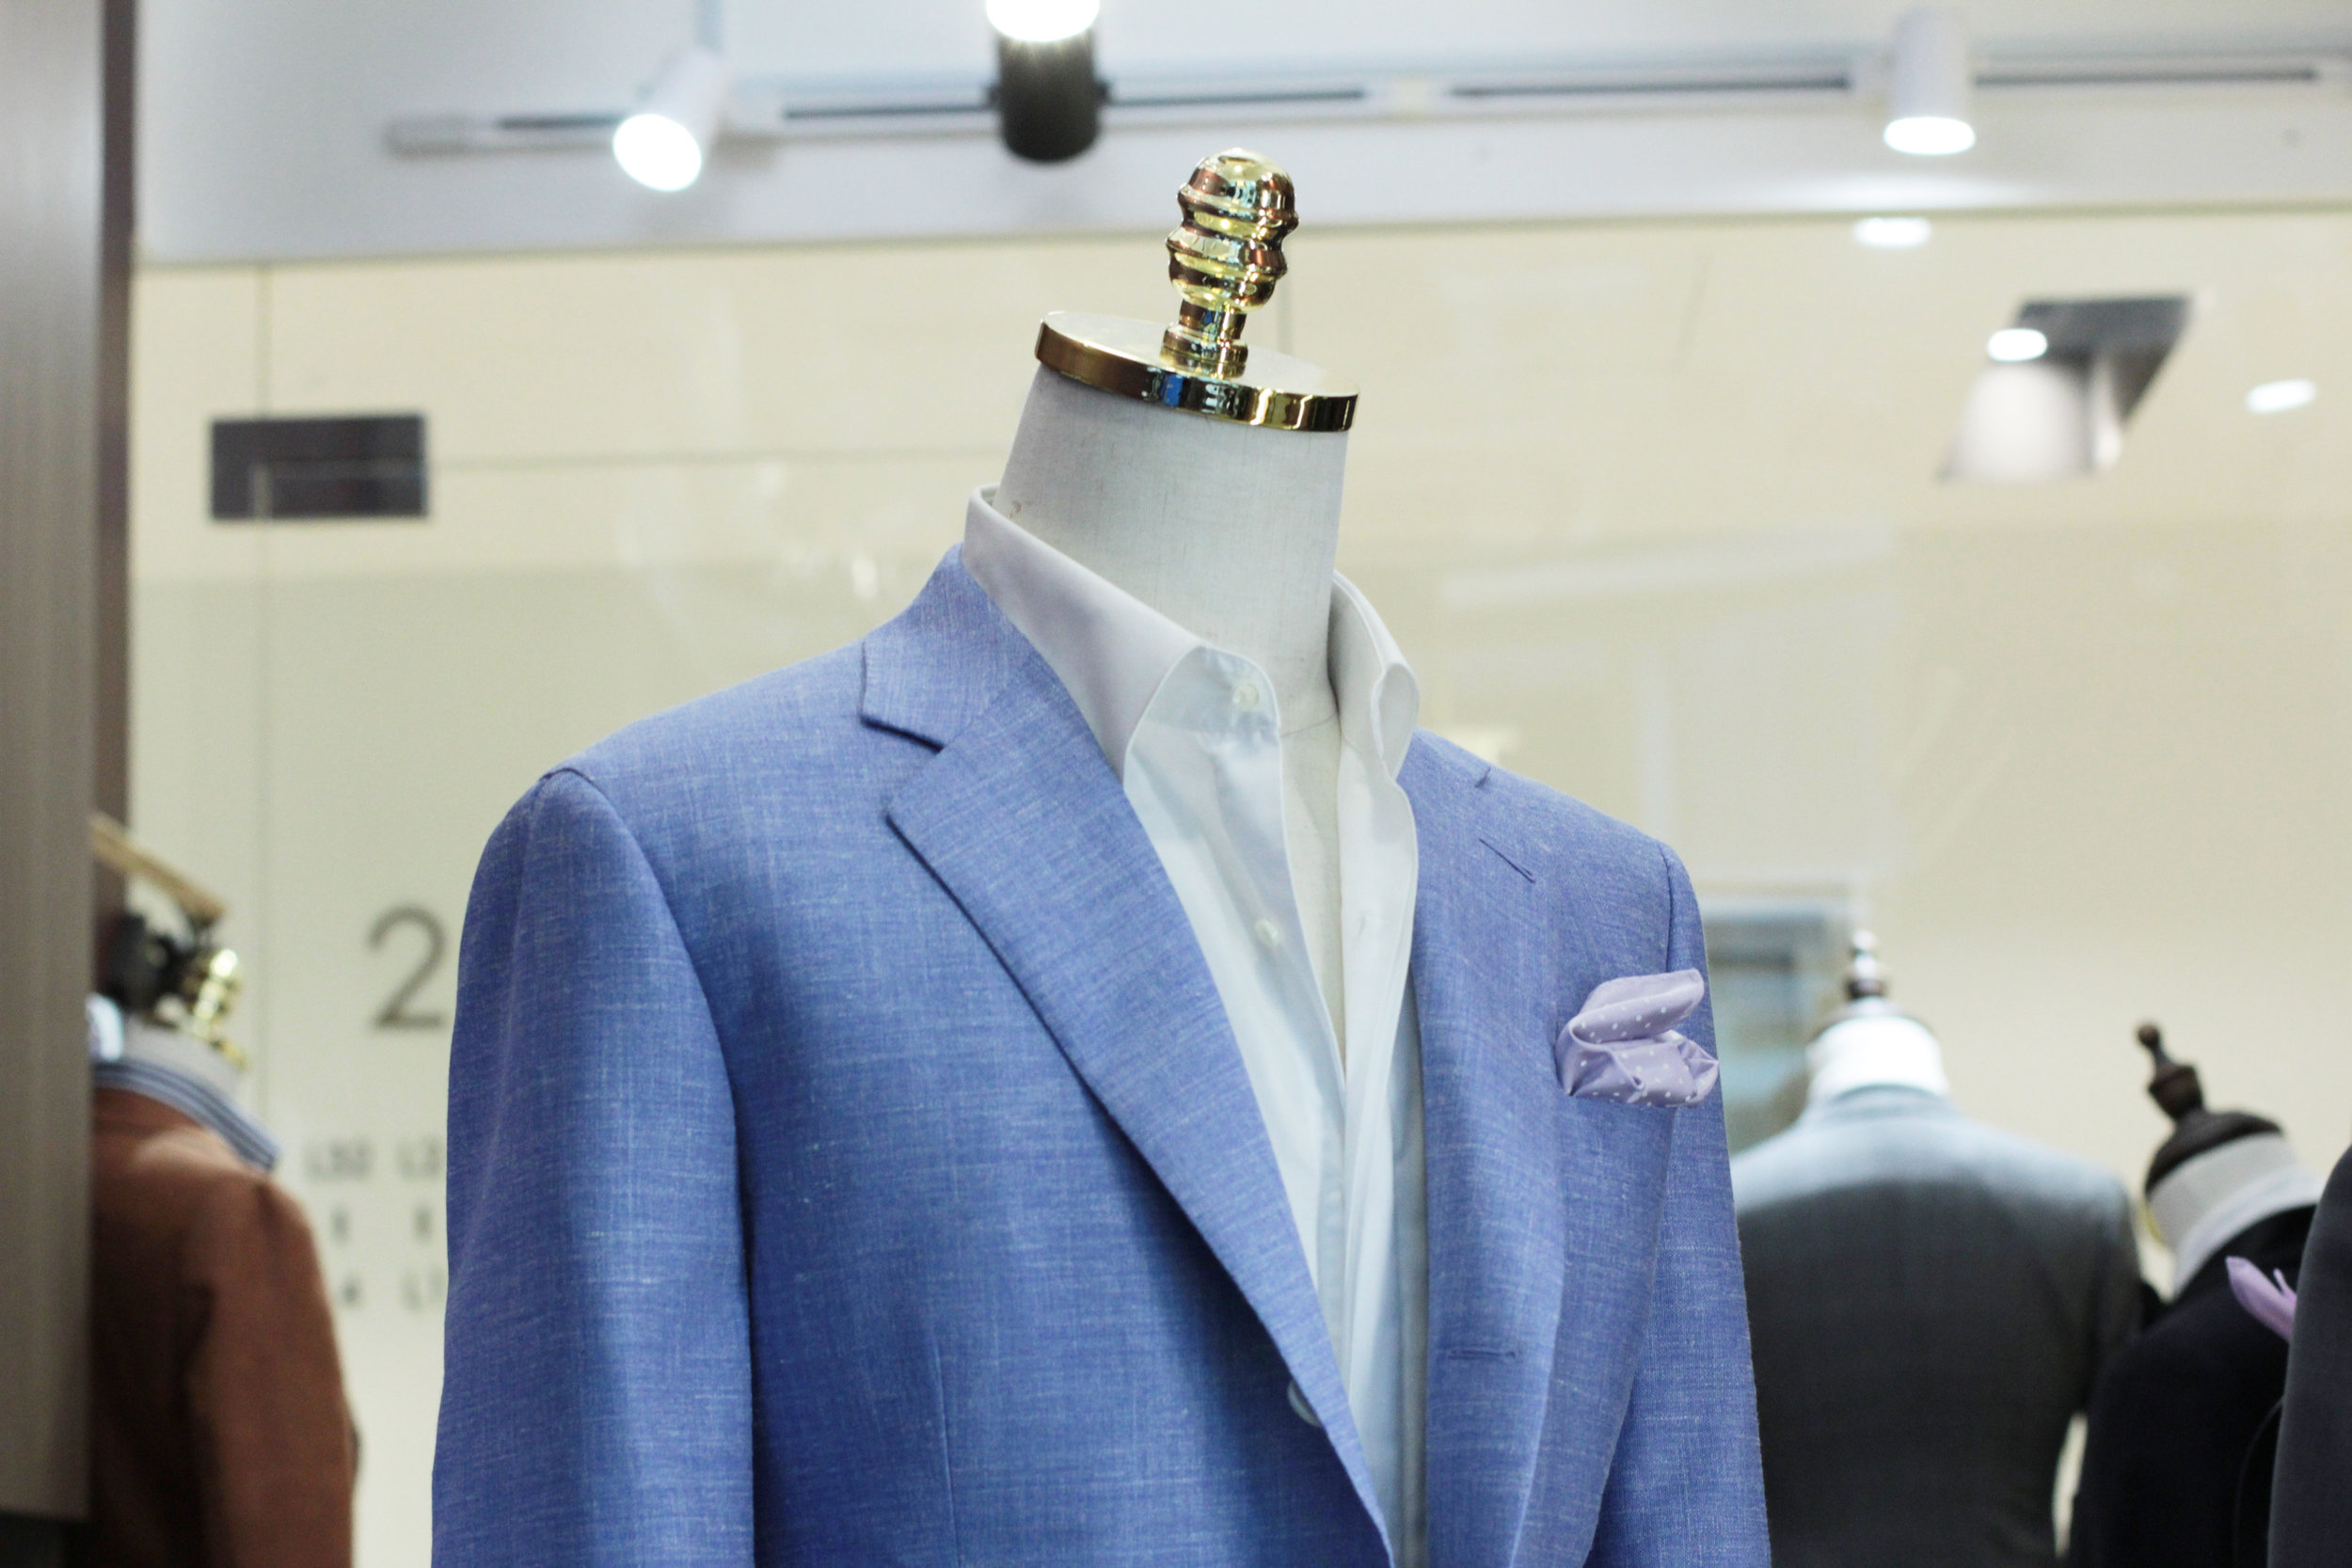 The Thanos Made Suits   Singapore Made to Measure   Bespoke Tailor side.JPG